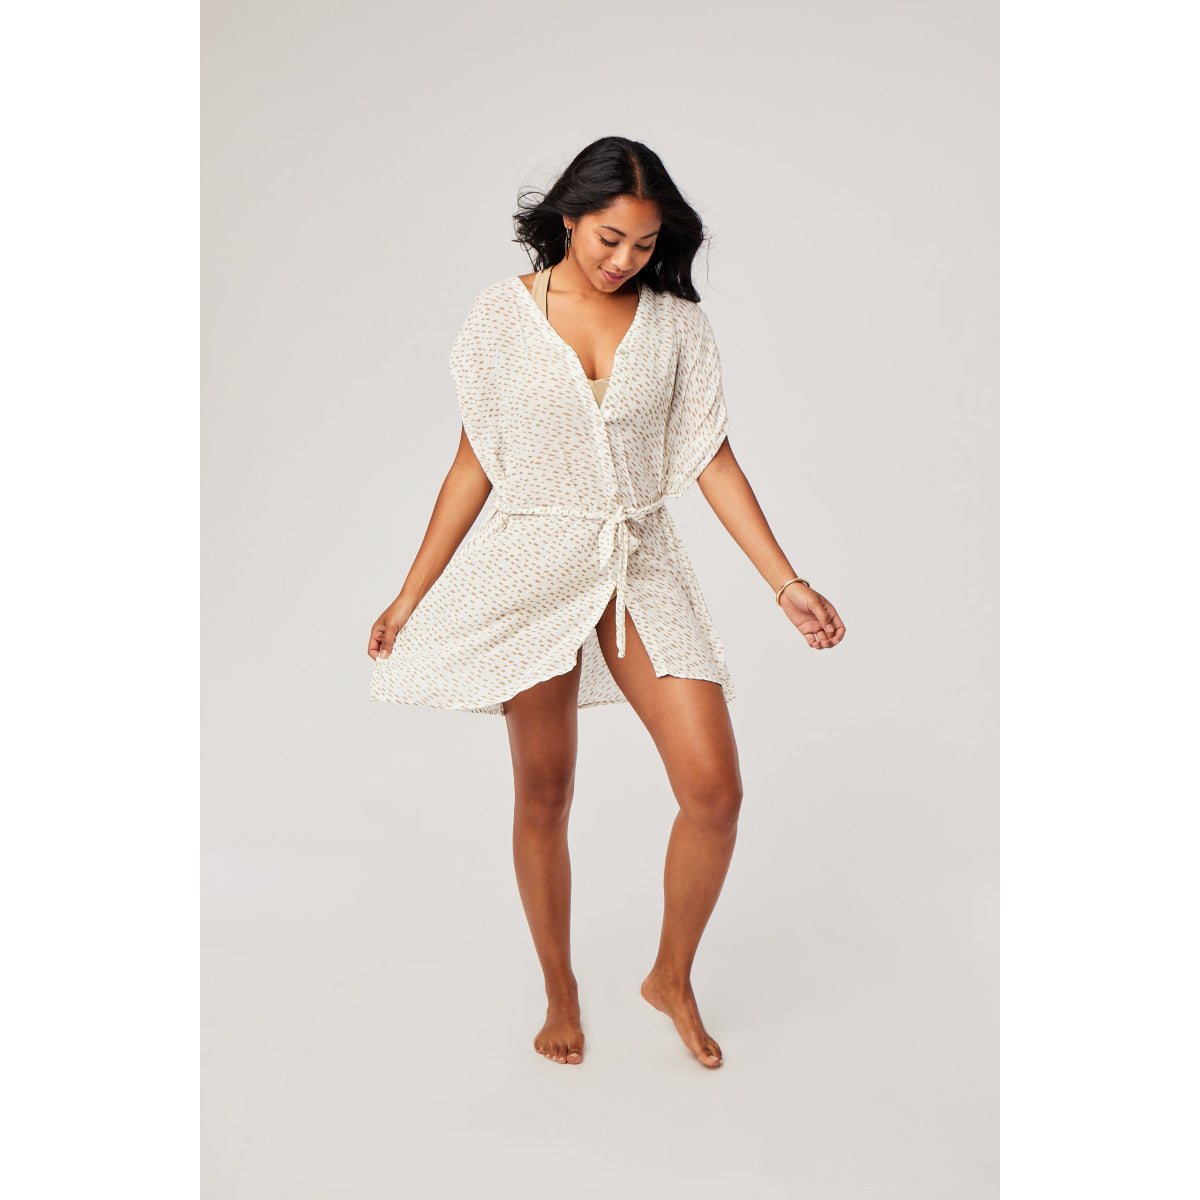 Carve Designs Iris Coverup - Sale